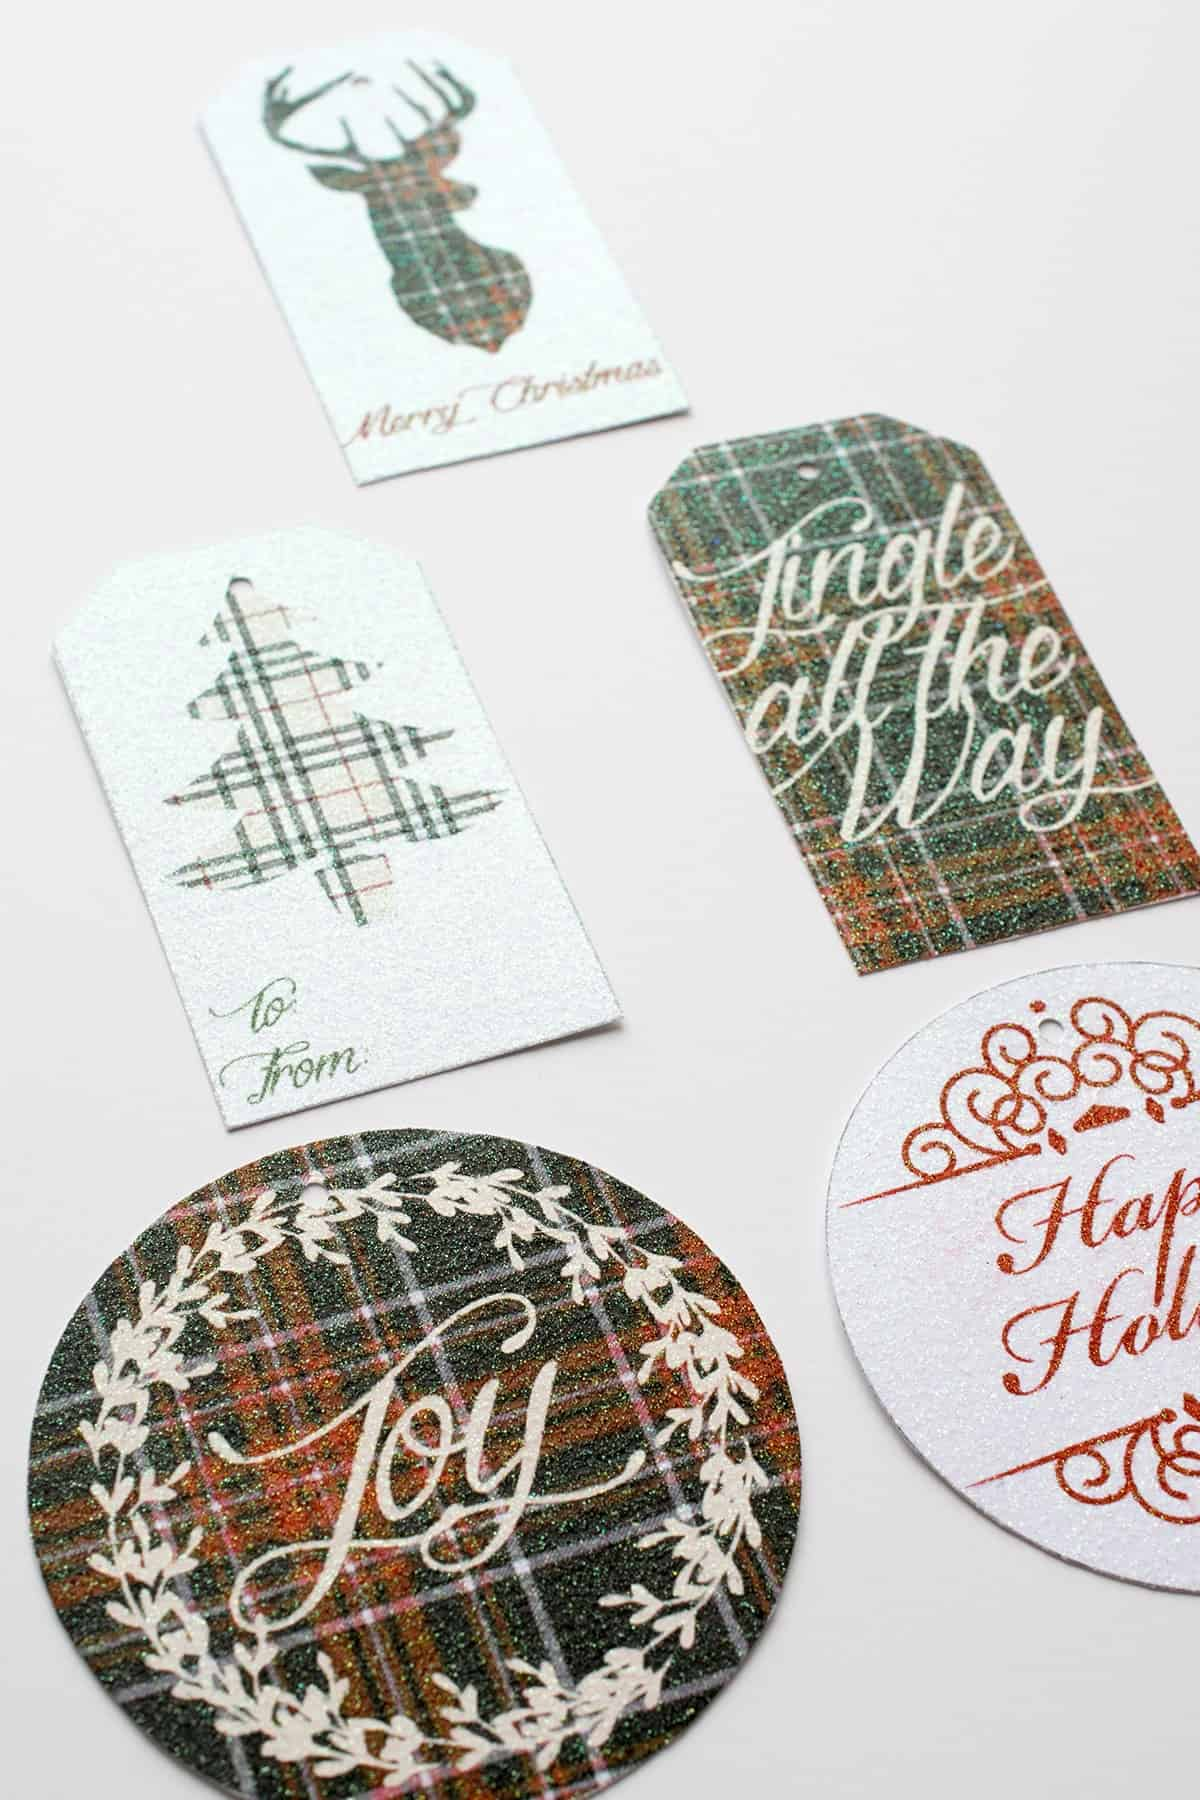 Free Printable Gift Tags - Christmas Plaid Gift Tags. These are wonderfully easy and printed on Core'dinations printable glitter paper.